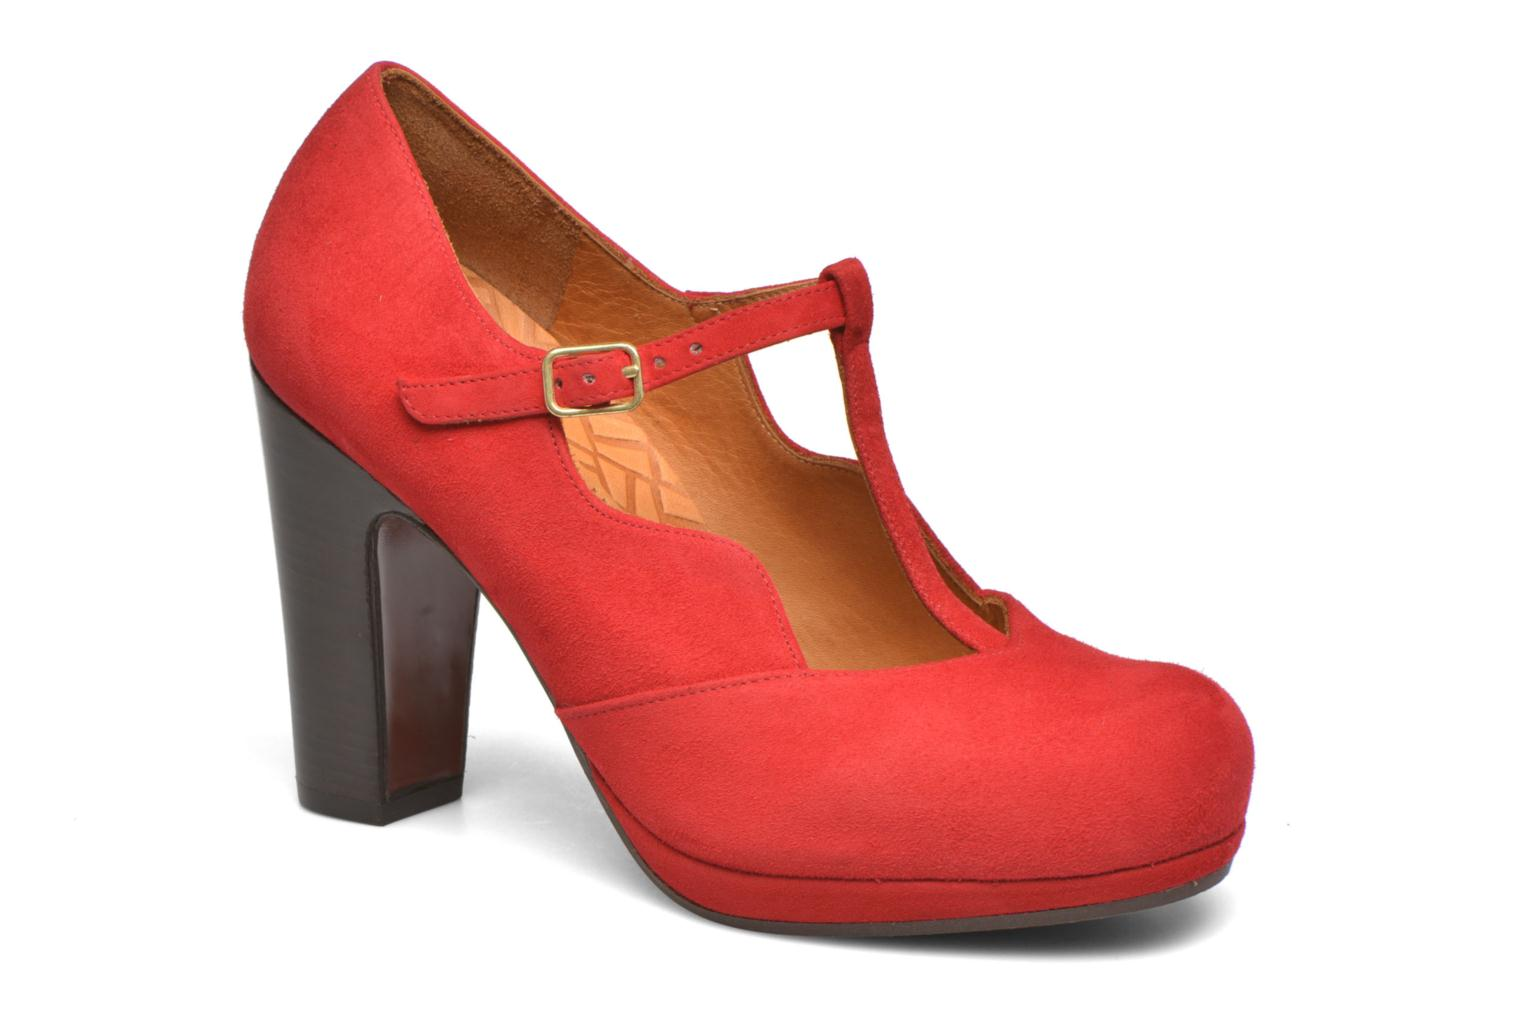 Marques Chaussure luxe femme Chie Mihara femme Ruana Ante Rojo